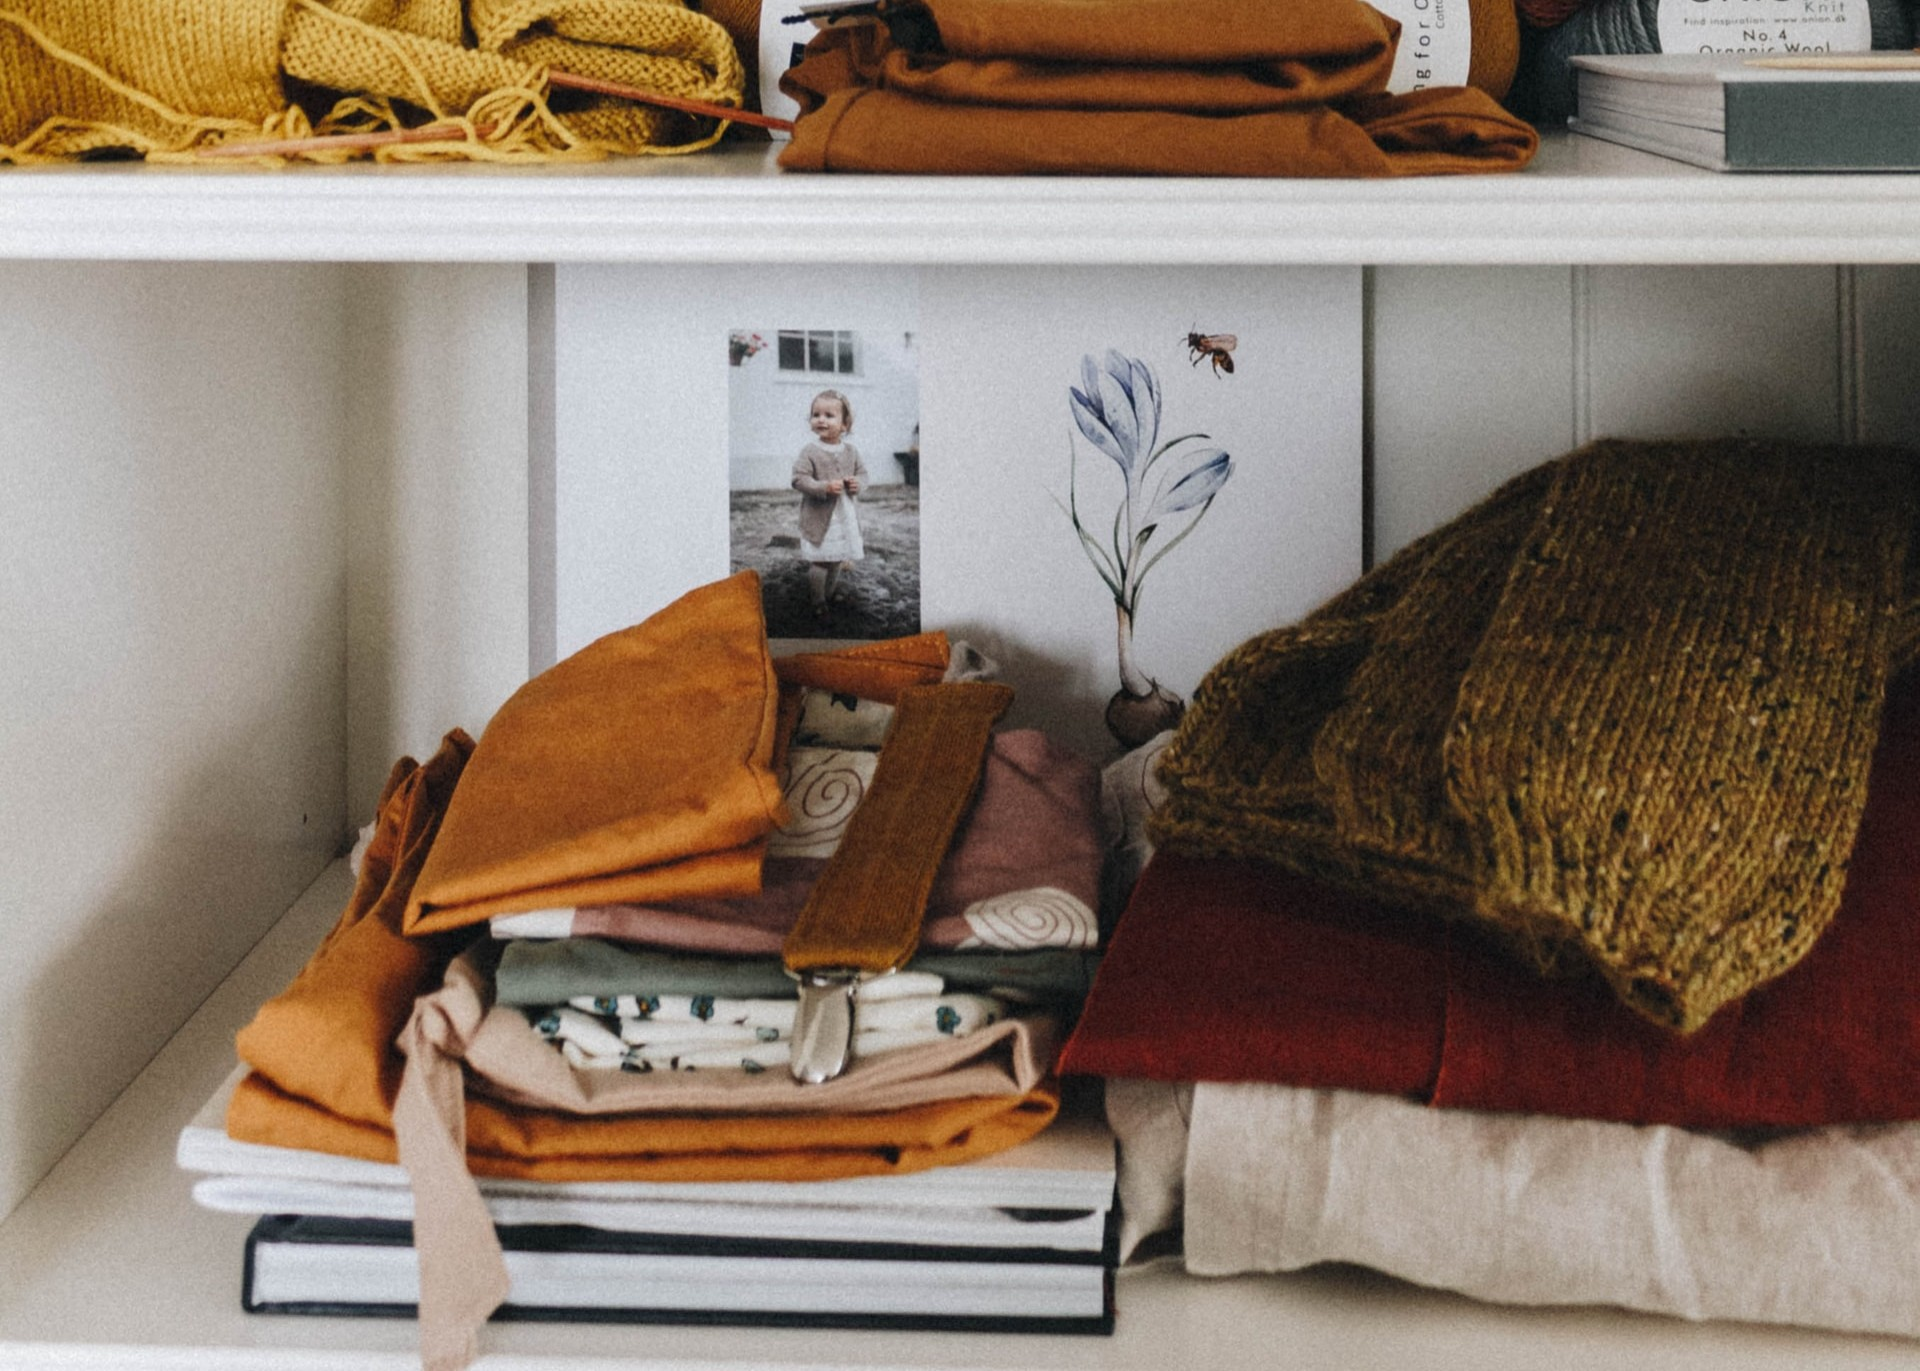 How to Give Your Aderdeen Apartment Closet a Fall Refresh